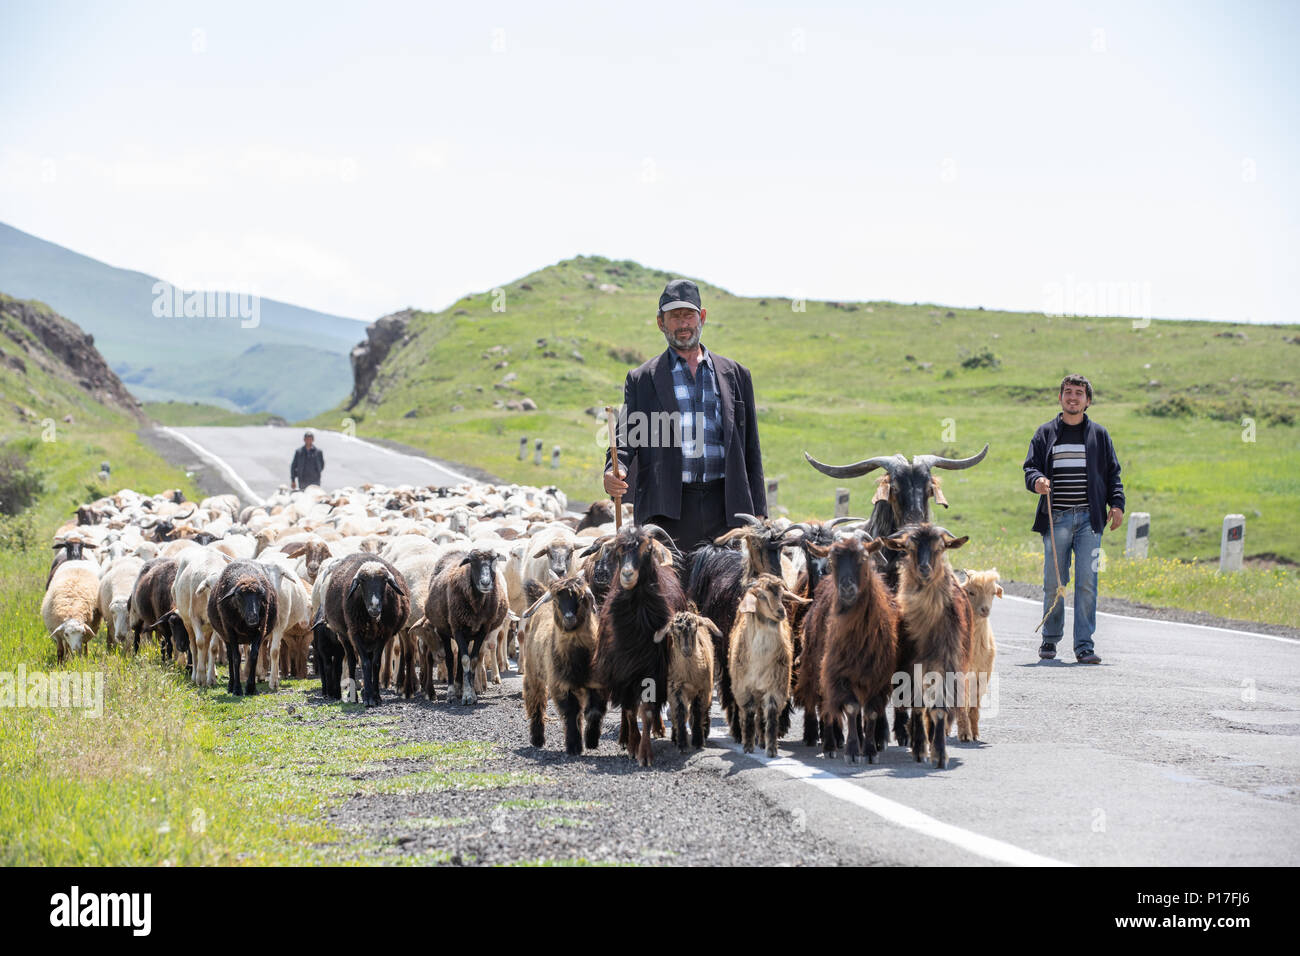 Tatev, Armenia - Jun 2, 2018: Armenian herders walking on the road with their herd of sheep and goats on a sunny summer day. - Stock Image